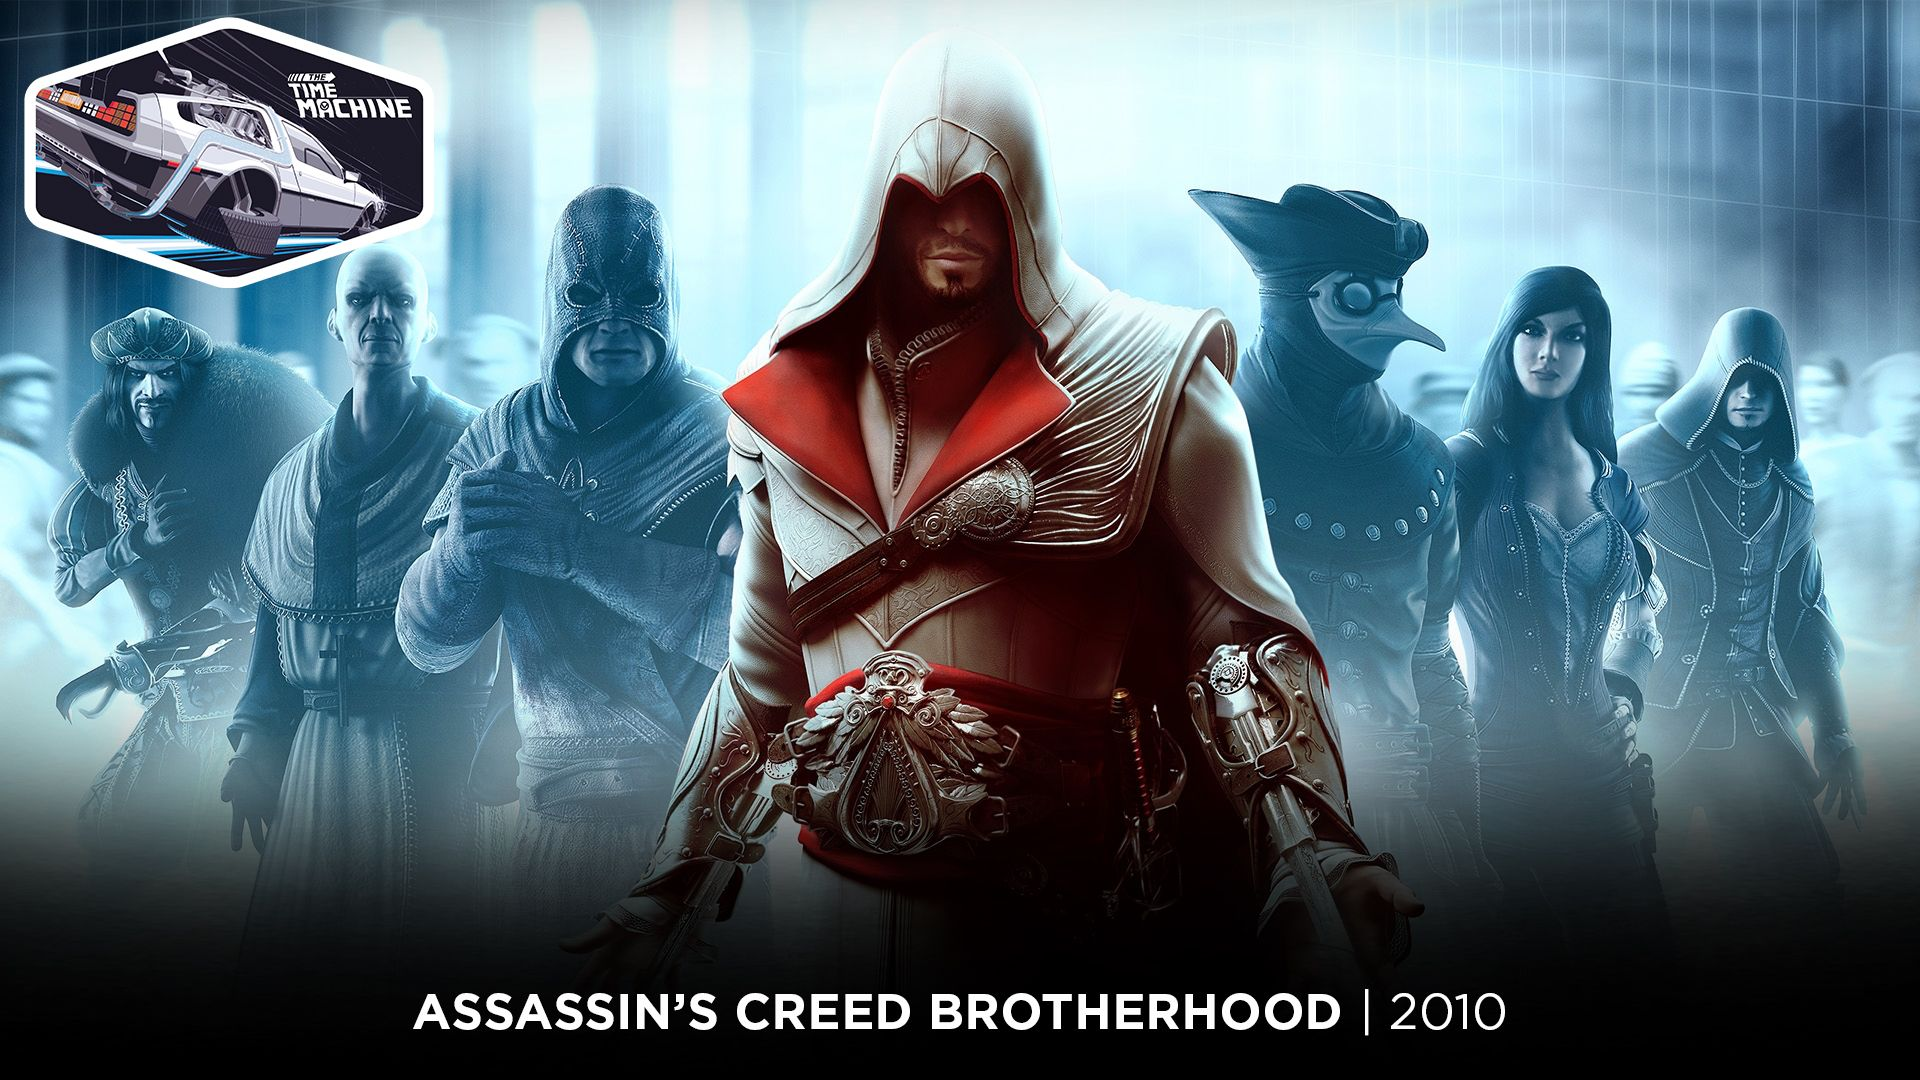 The Time Machine - Assassin's Creed Brotherhood